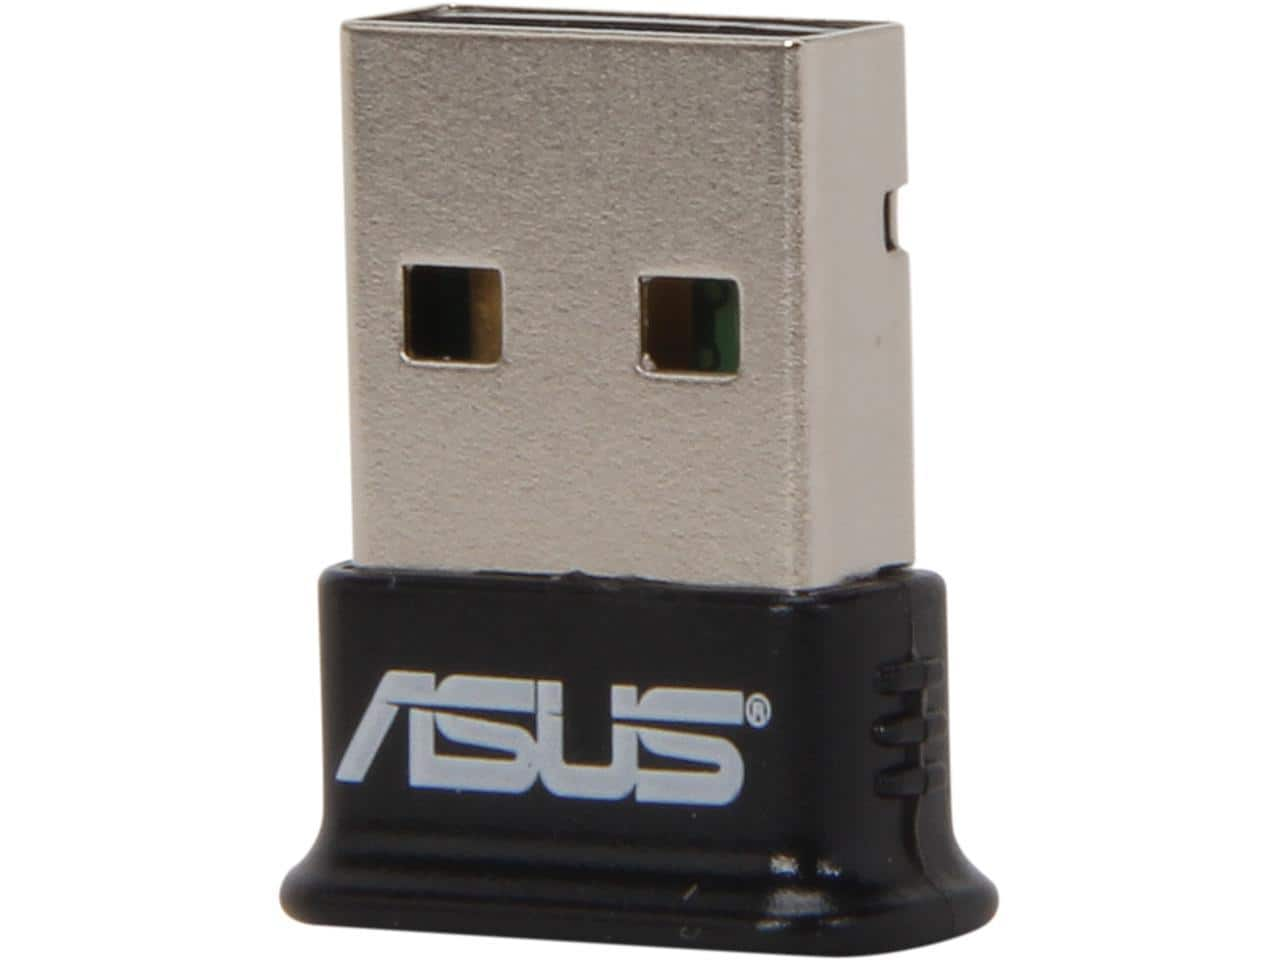 ASUS USB-BT400 USB Adapter w/ Bluetooth Dongle Receiver $9.99 + FS